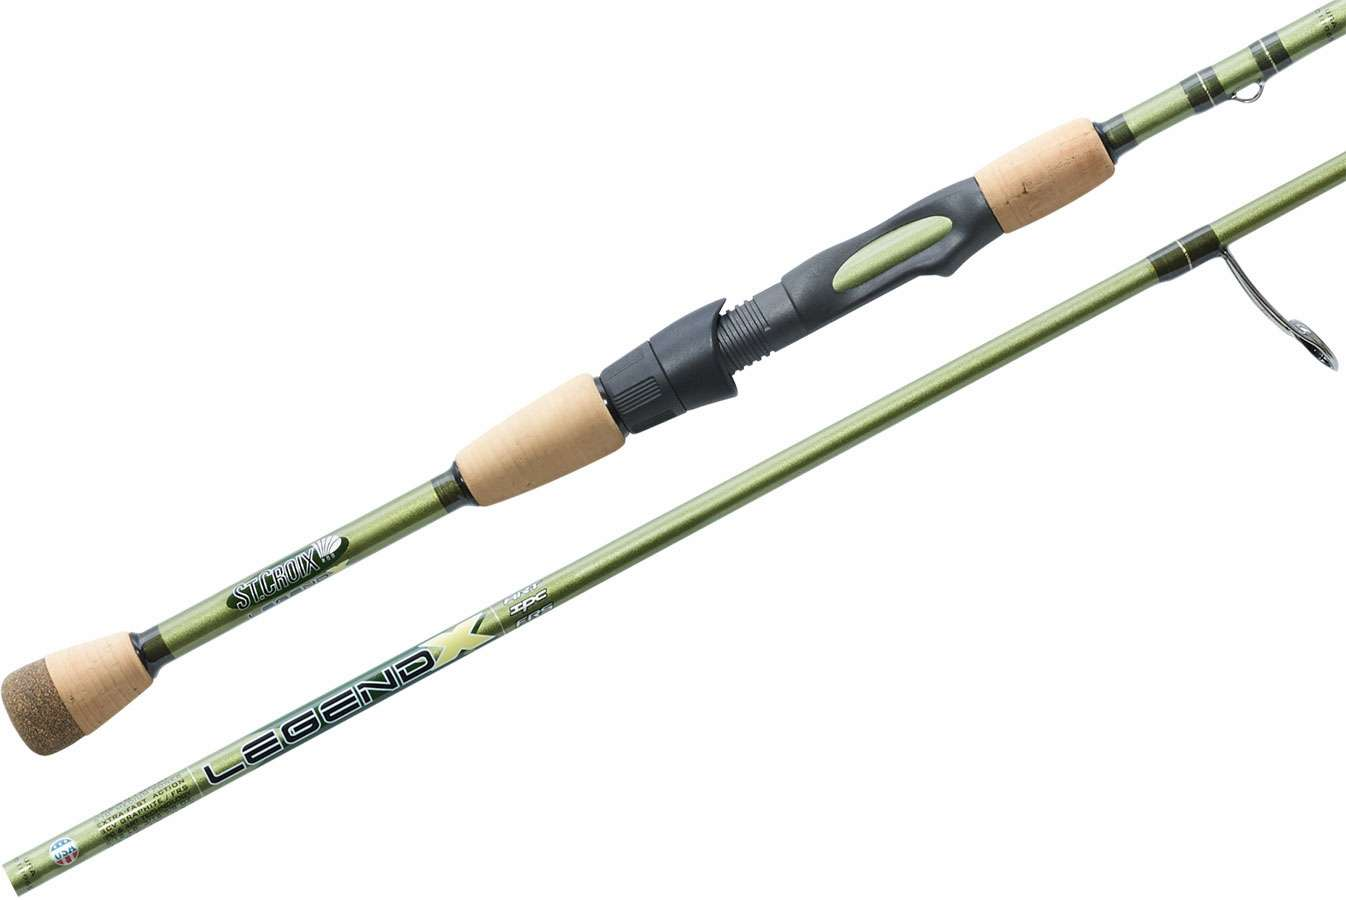 St croix xls610mlxf legend x spinning rod 6 ft 10 in for Freshwater fishing rods